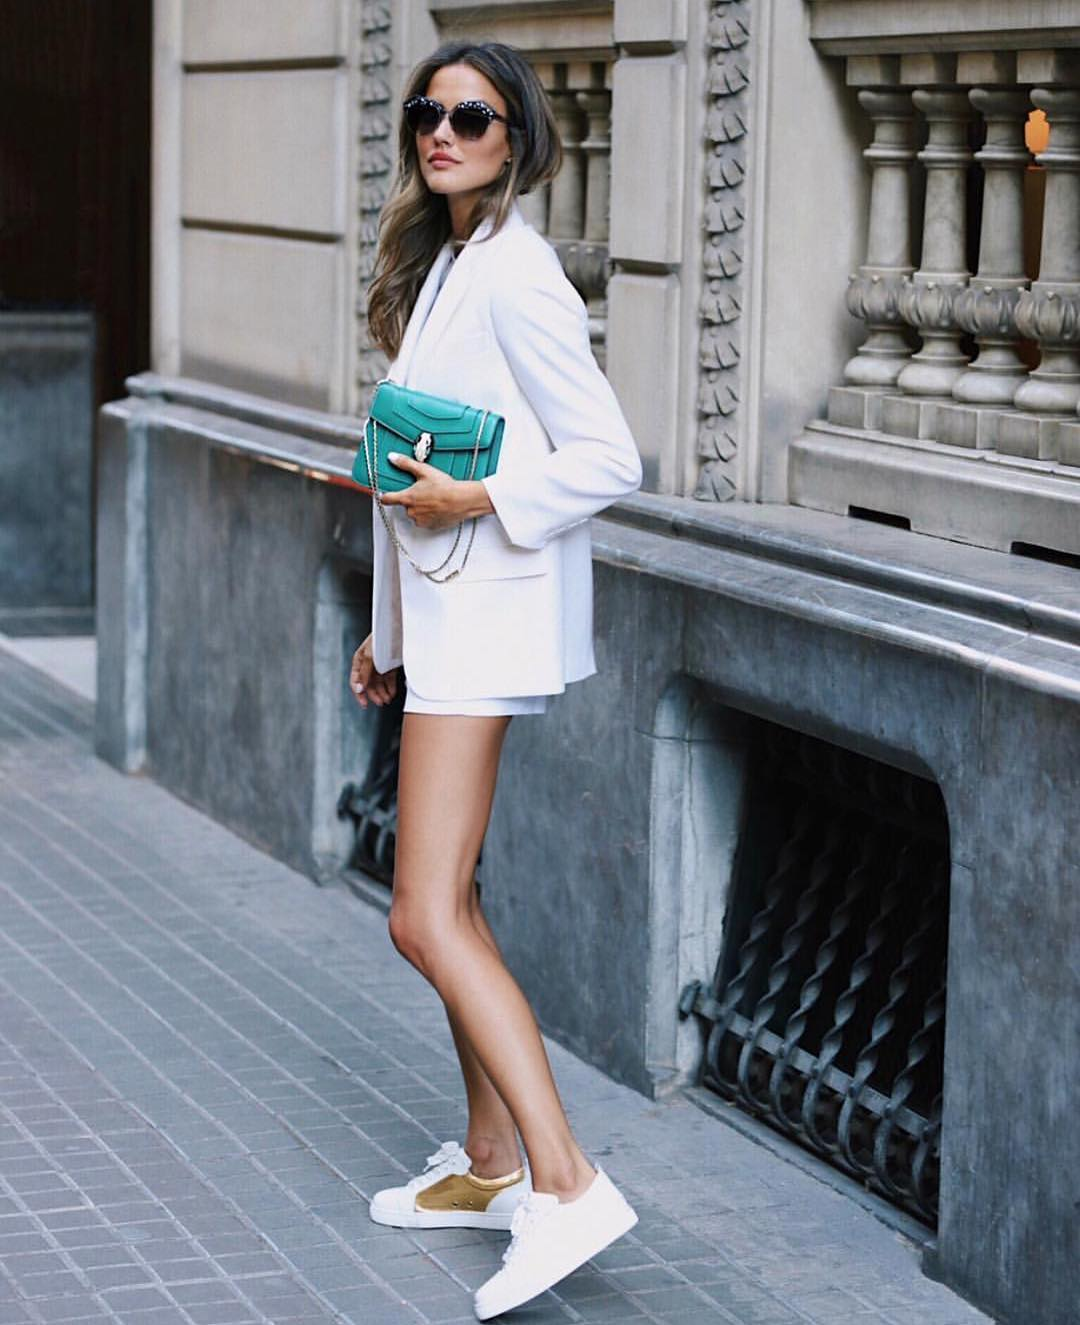 All White Look For Summer: Blazer, Shorts And Sneakers 2021